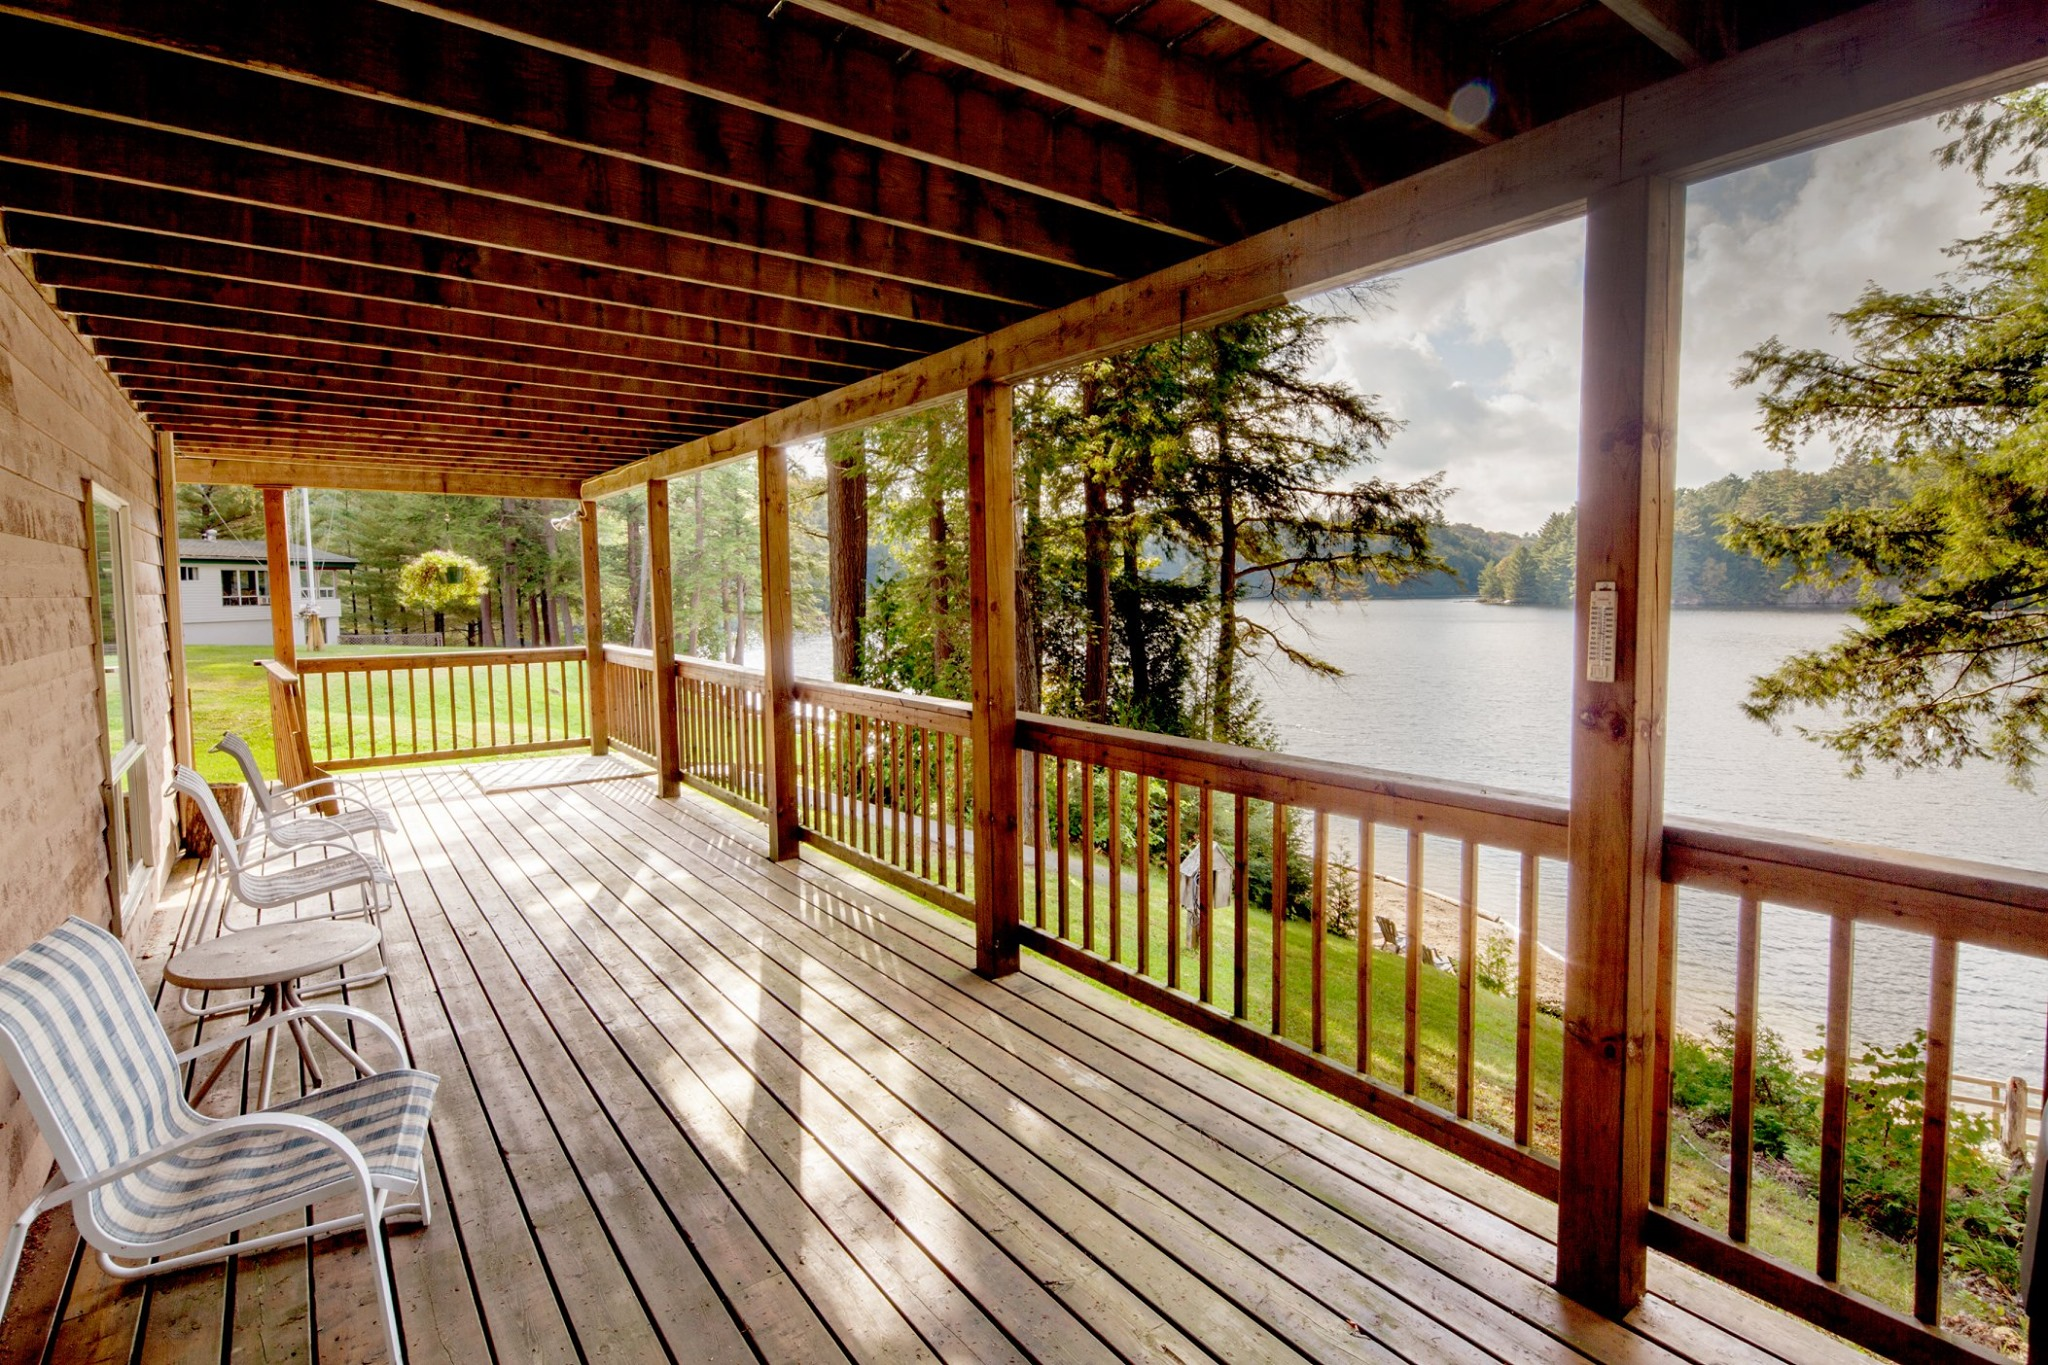 Image of Cottage looking out to the water